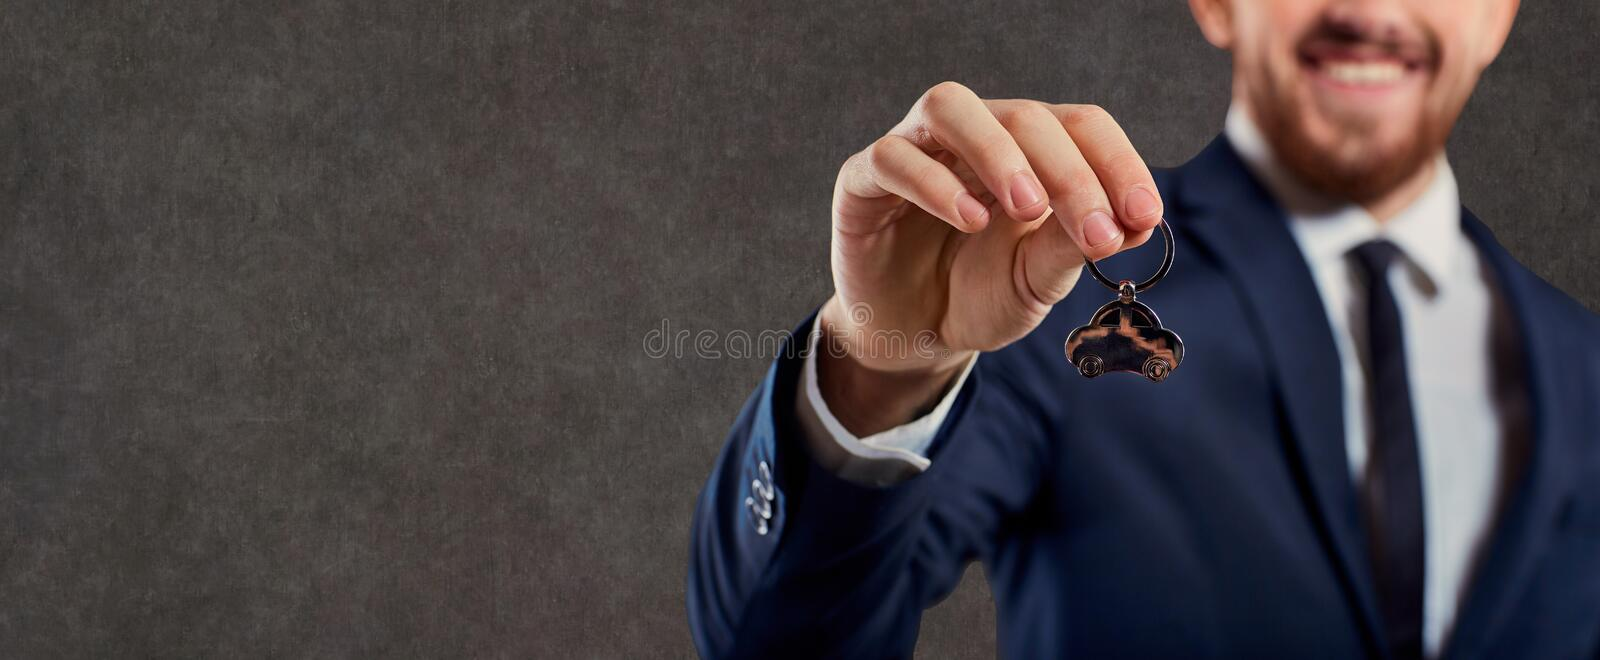 Hand of a man in a suit with a keychain for a car key. Hand of a man in a suit with a keychain for a car key against a copyspace background royalty free stock photo